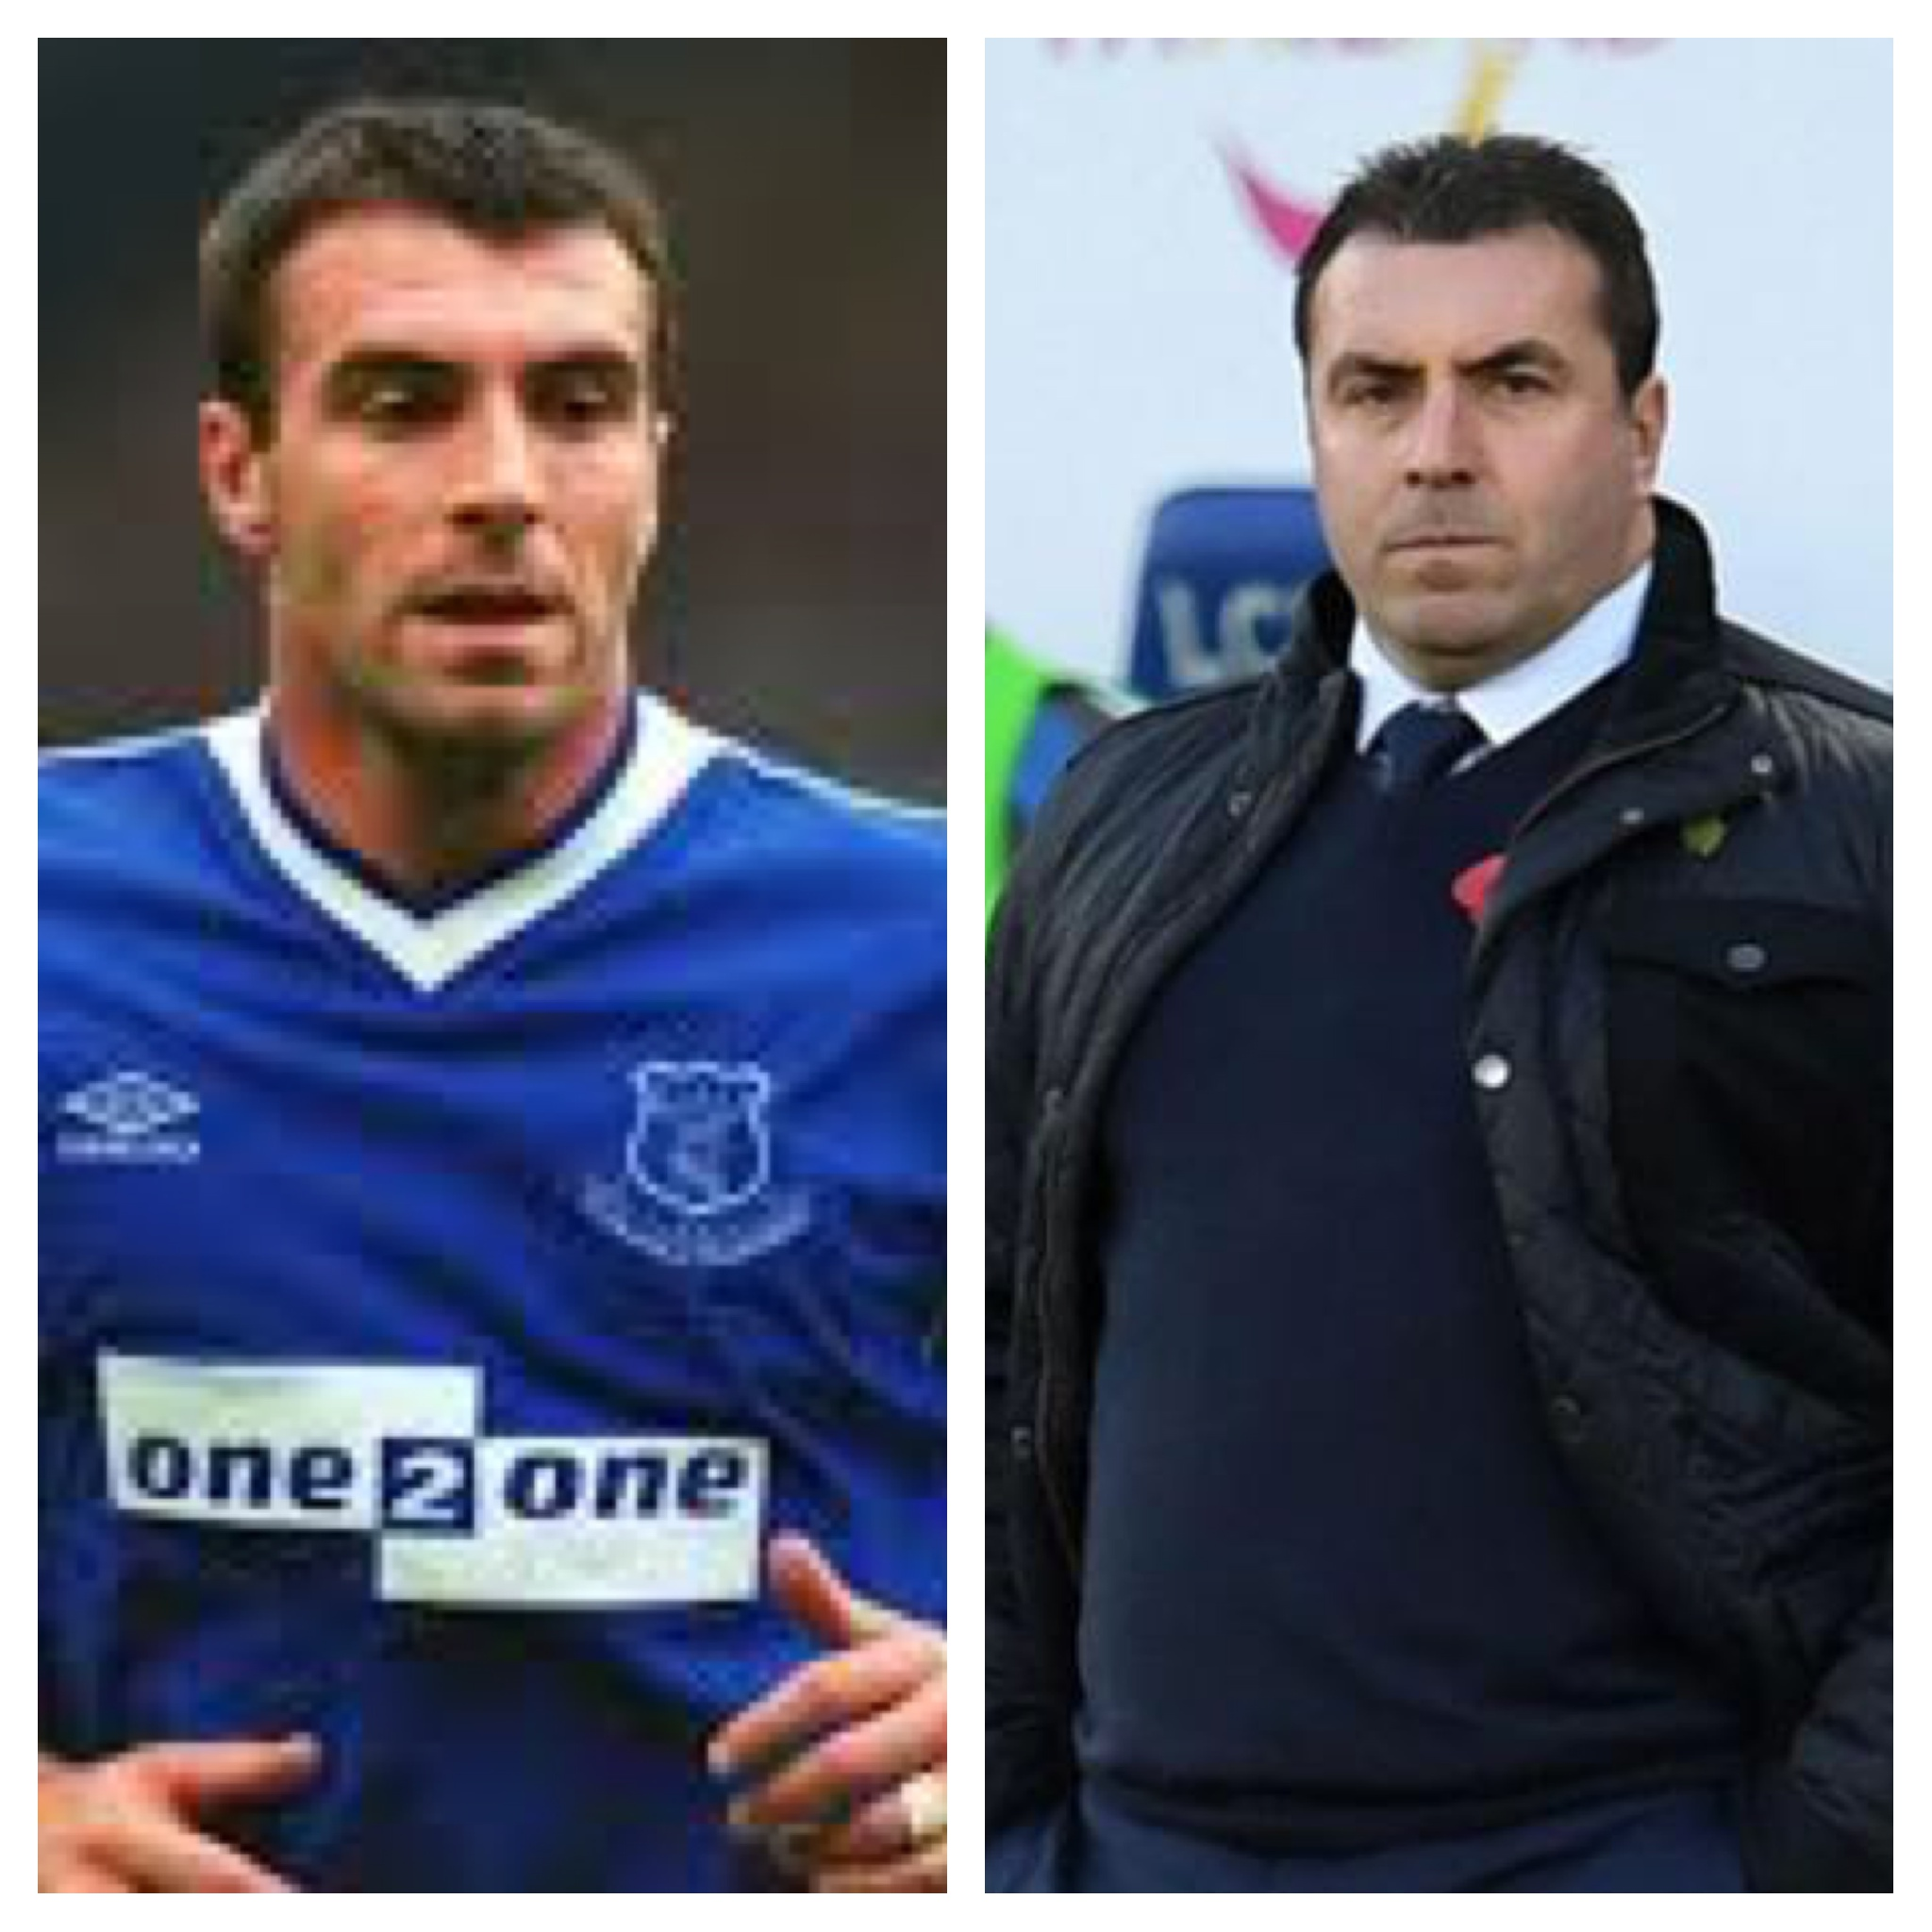 Barton V Unsworth Is It Ok To Be A Fat Coach Real Results 4 Real